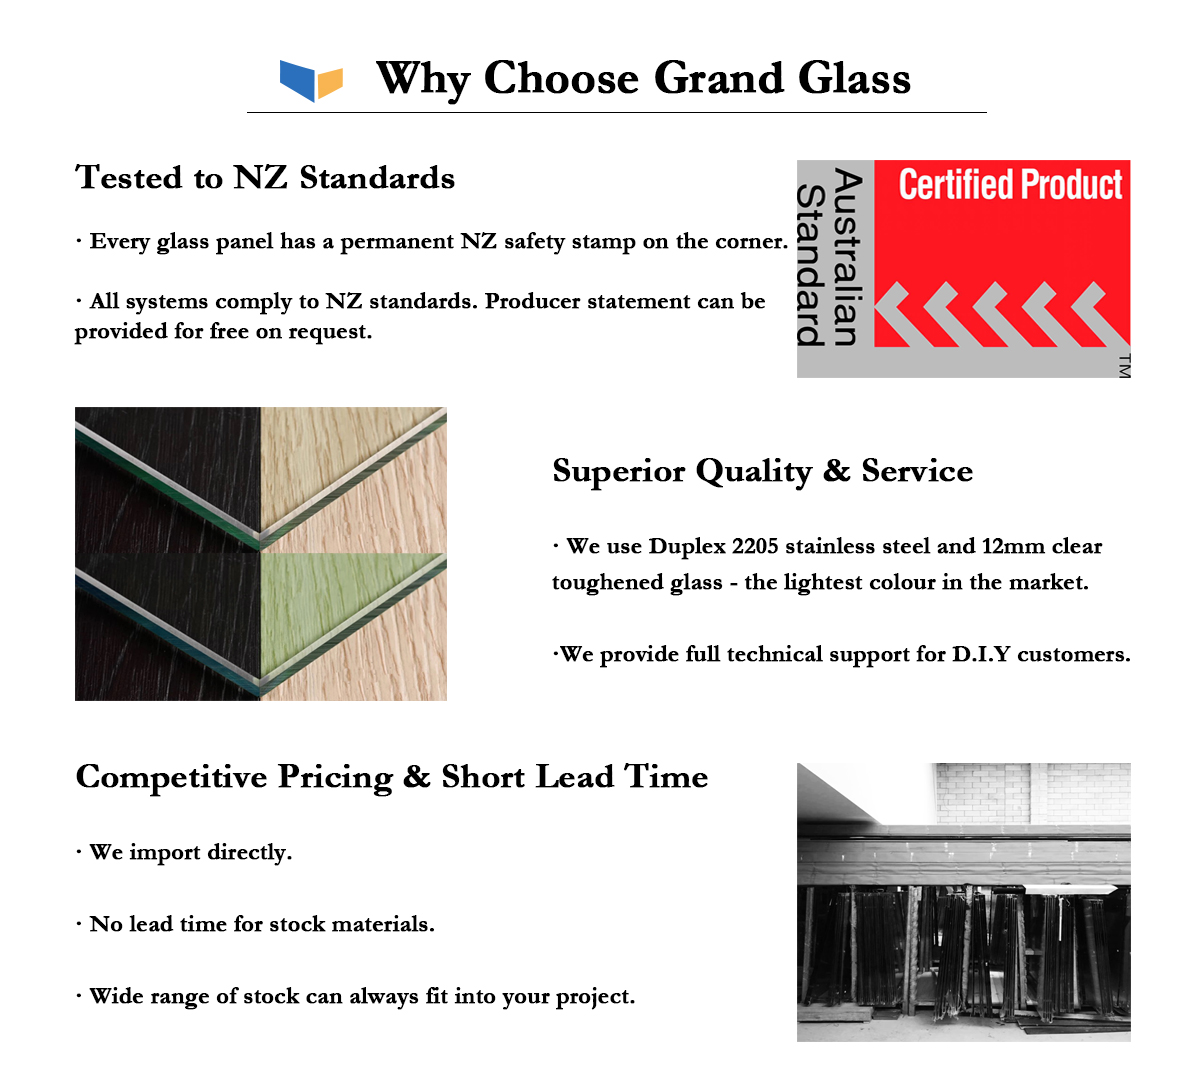 why-choose-grand-glass-revised-31.jpg